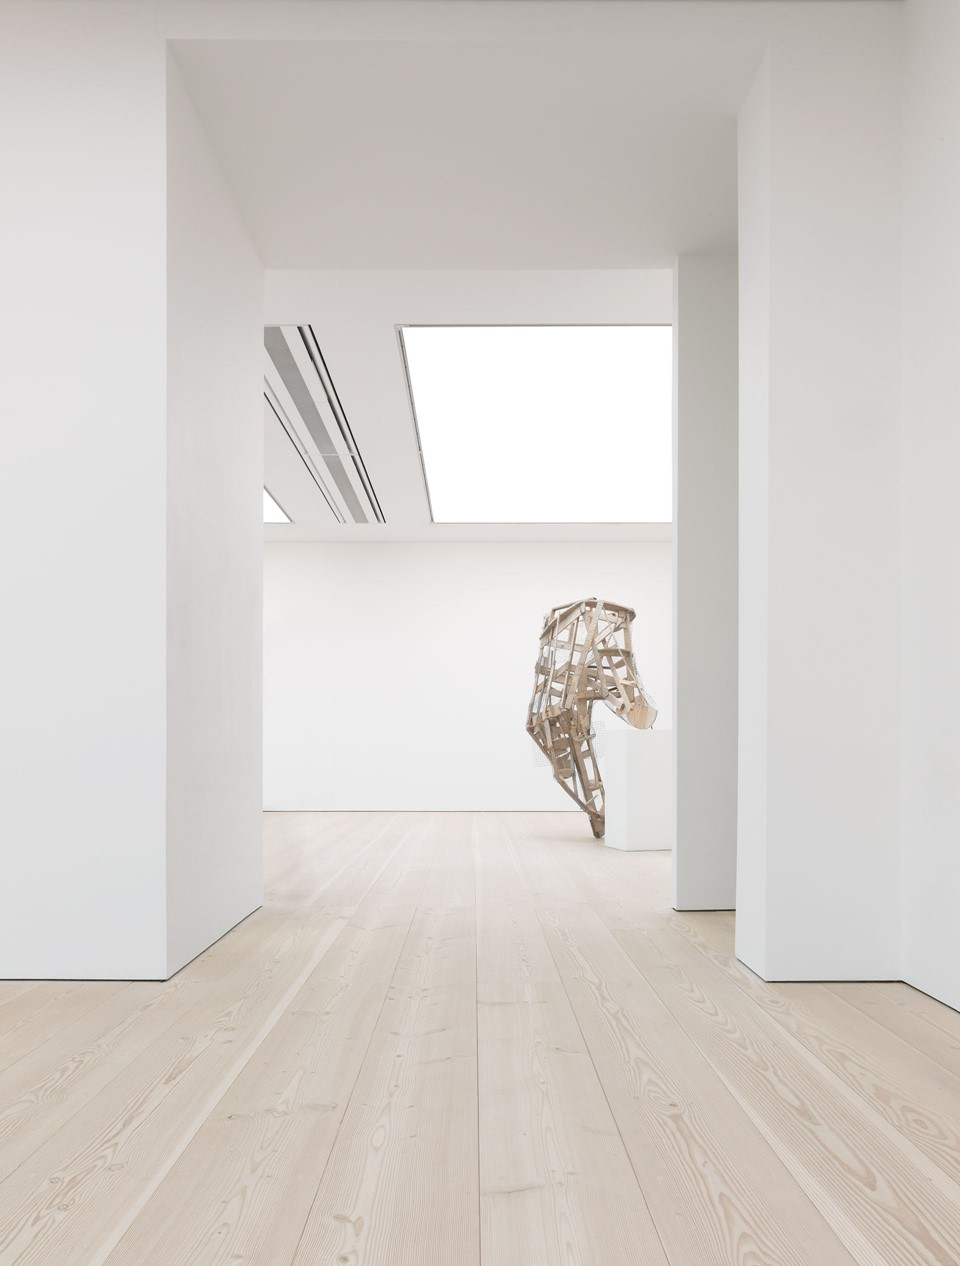 douglas-fir-flooring_lye-white-soap_saatchi-gallery_sculpture_dinesen_02_.jpg